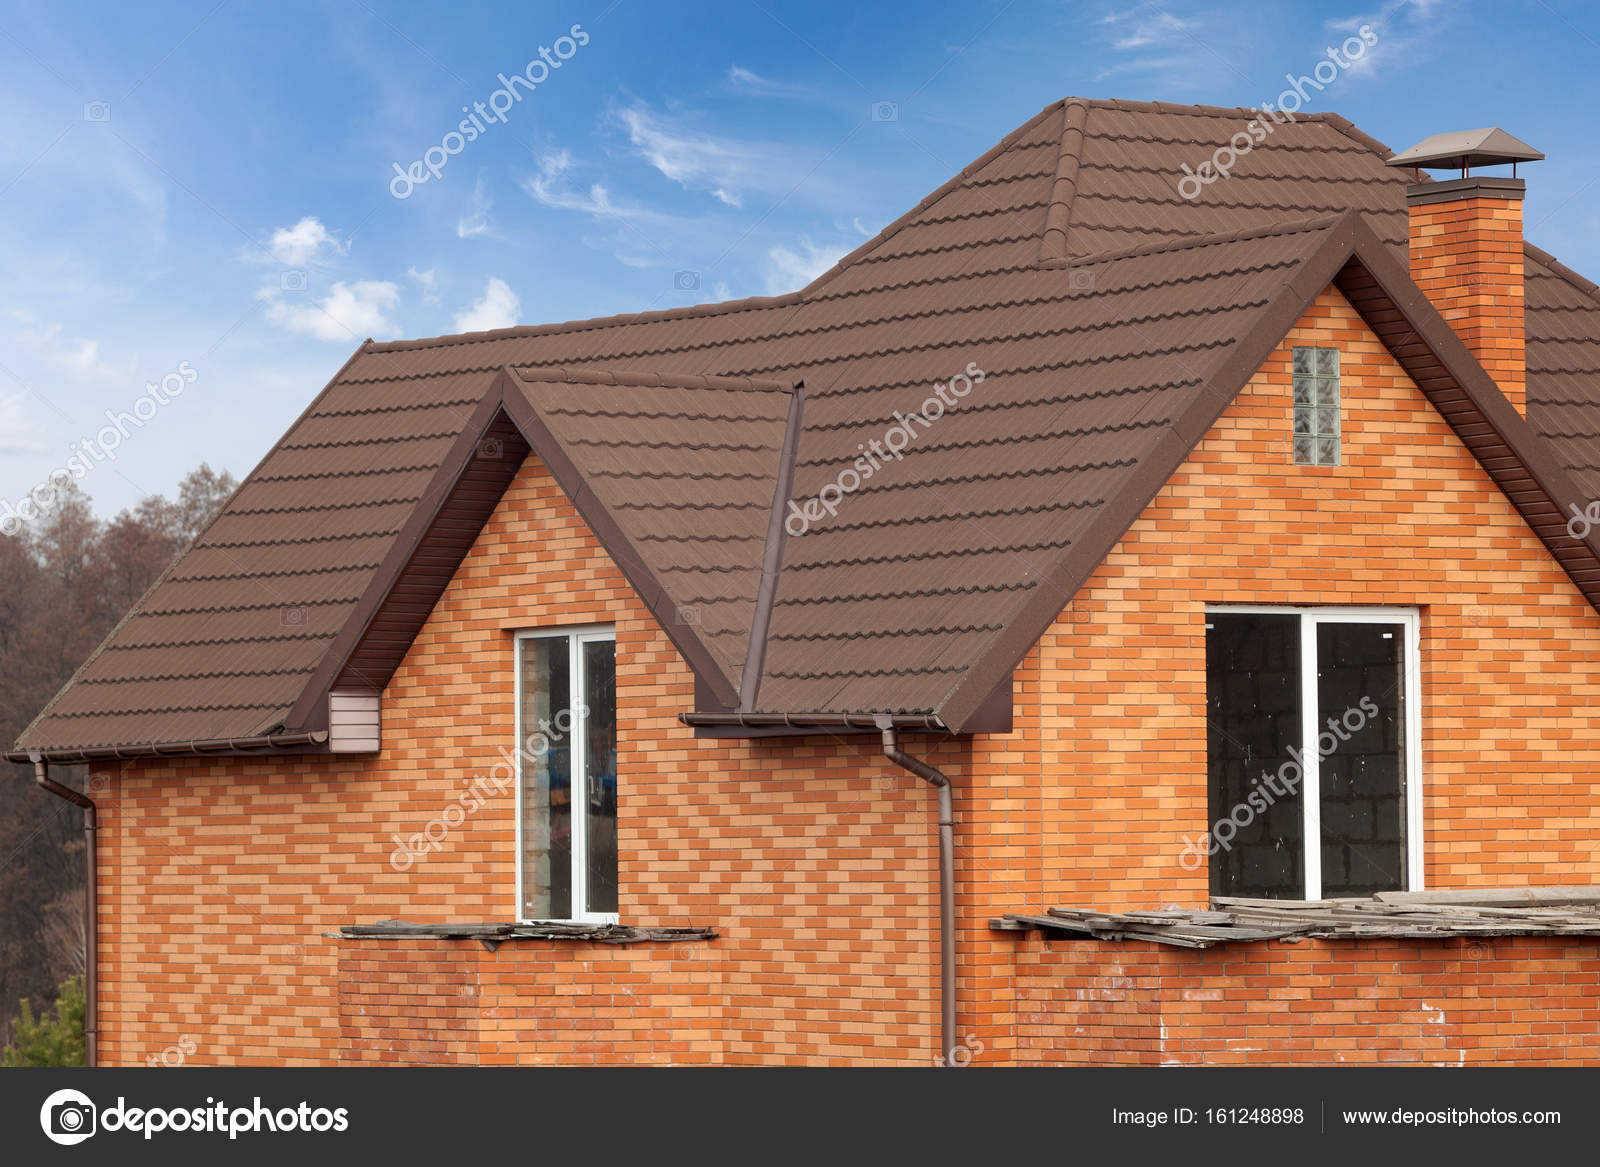 New brick house with modular chimney stone coated metal for Metal roof pictures brick house